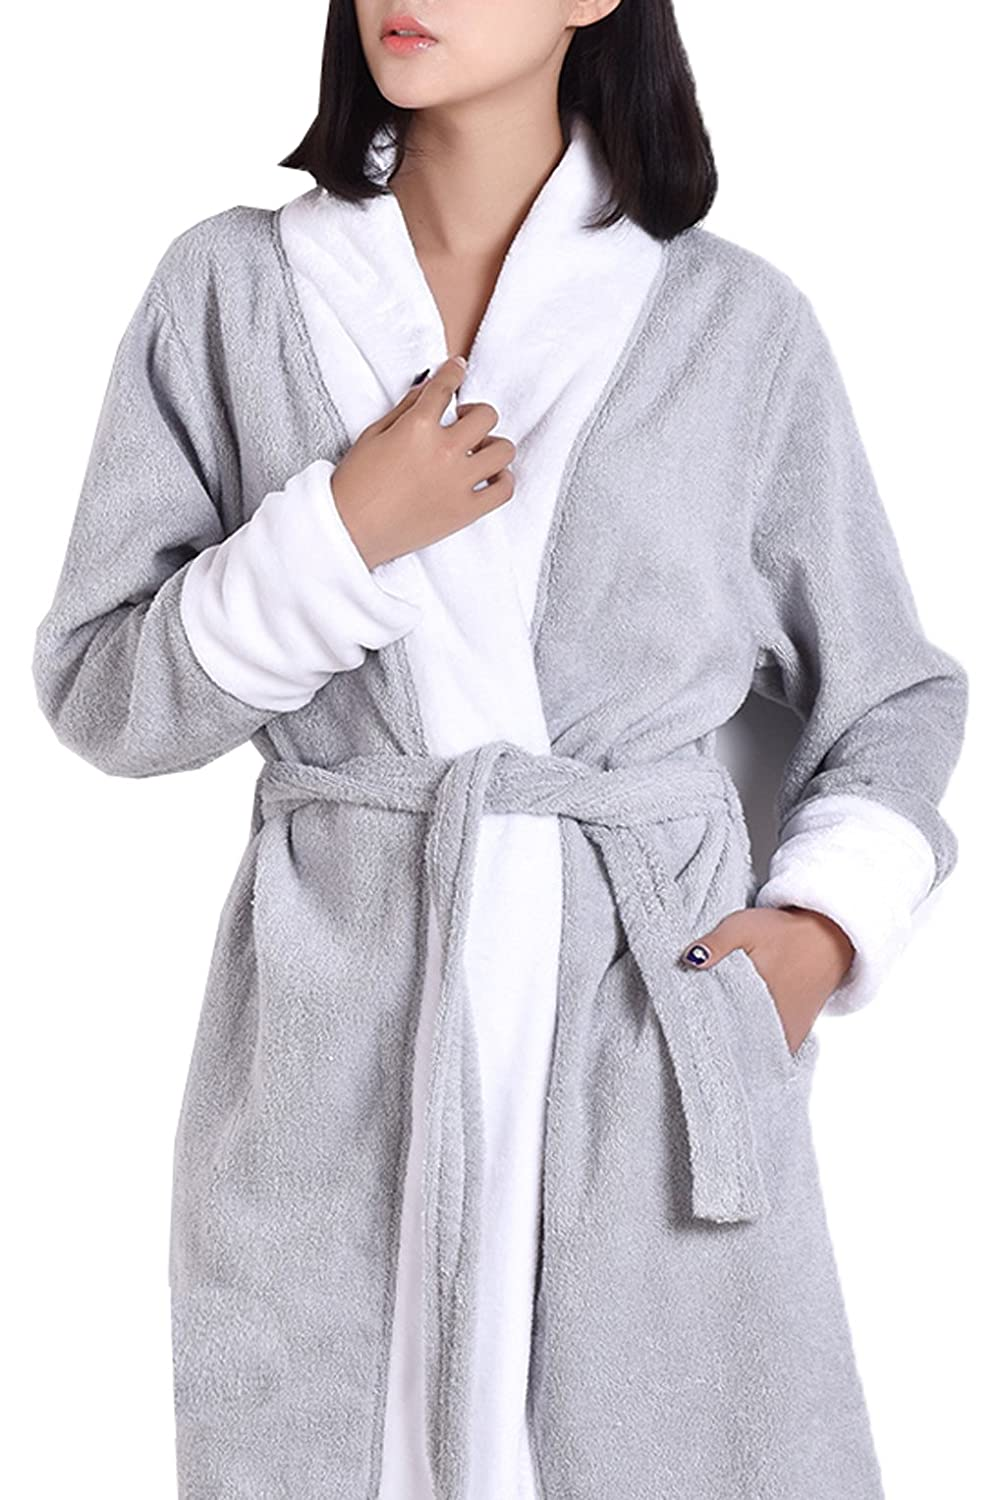 S.T.M Women's 100% Cotton Contrast Color Terry Cloth Robe Calf Length Cotton Robe